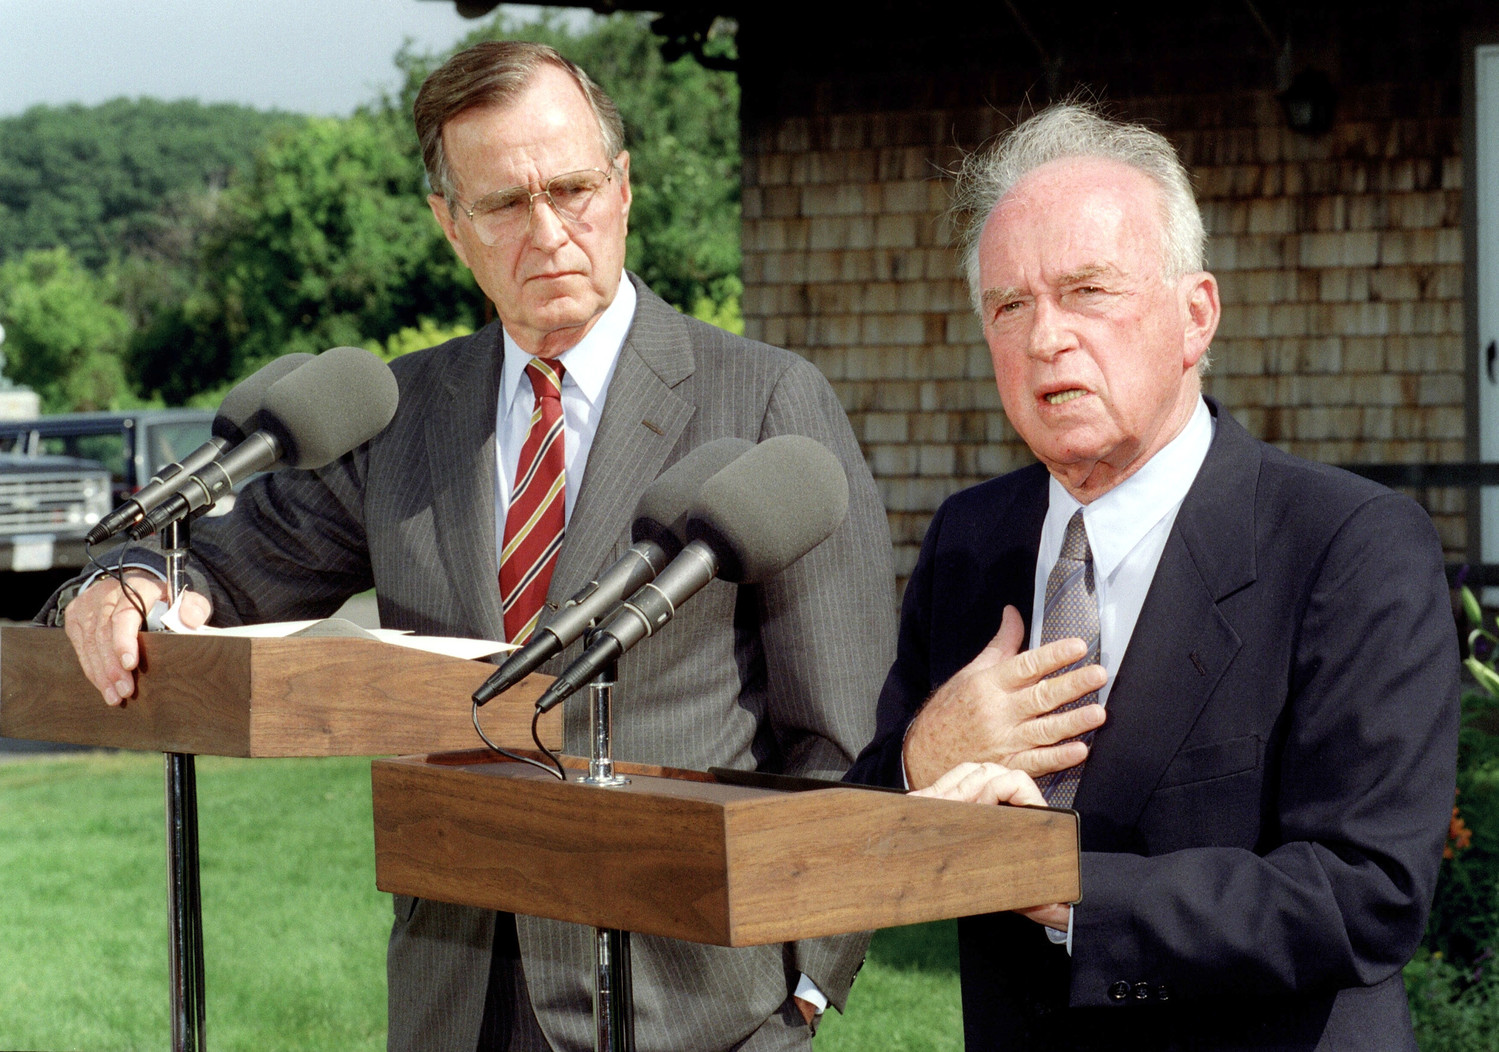 US President George Bush (L) listens to Israeli Prime Minister Yitzhak Rabin answer questions at a joint press conference, 11 August 1992, at Bush's Kennebunkport home. Bush announced a ten billion dollar loan guarantees for the Jewish state to help resettlement programs.